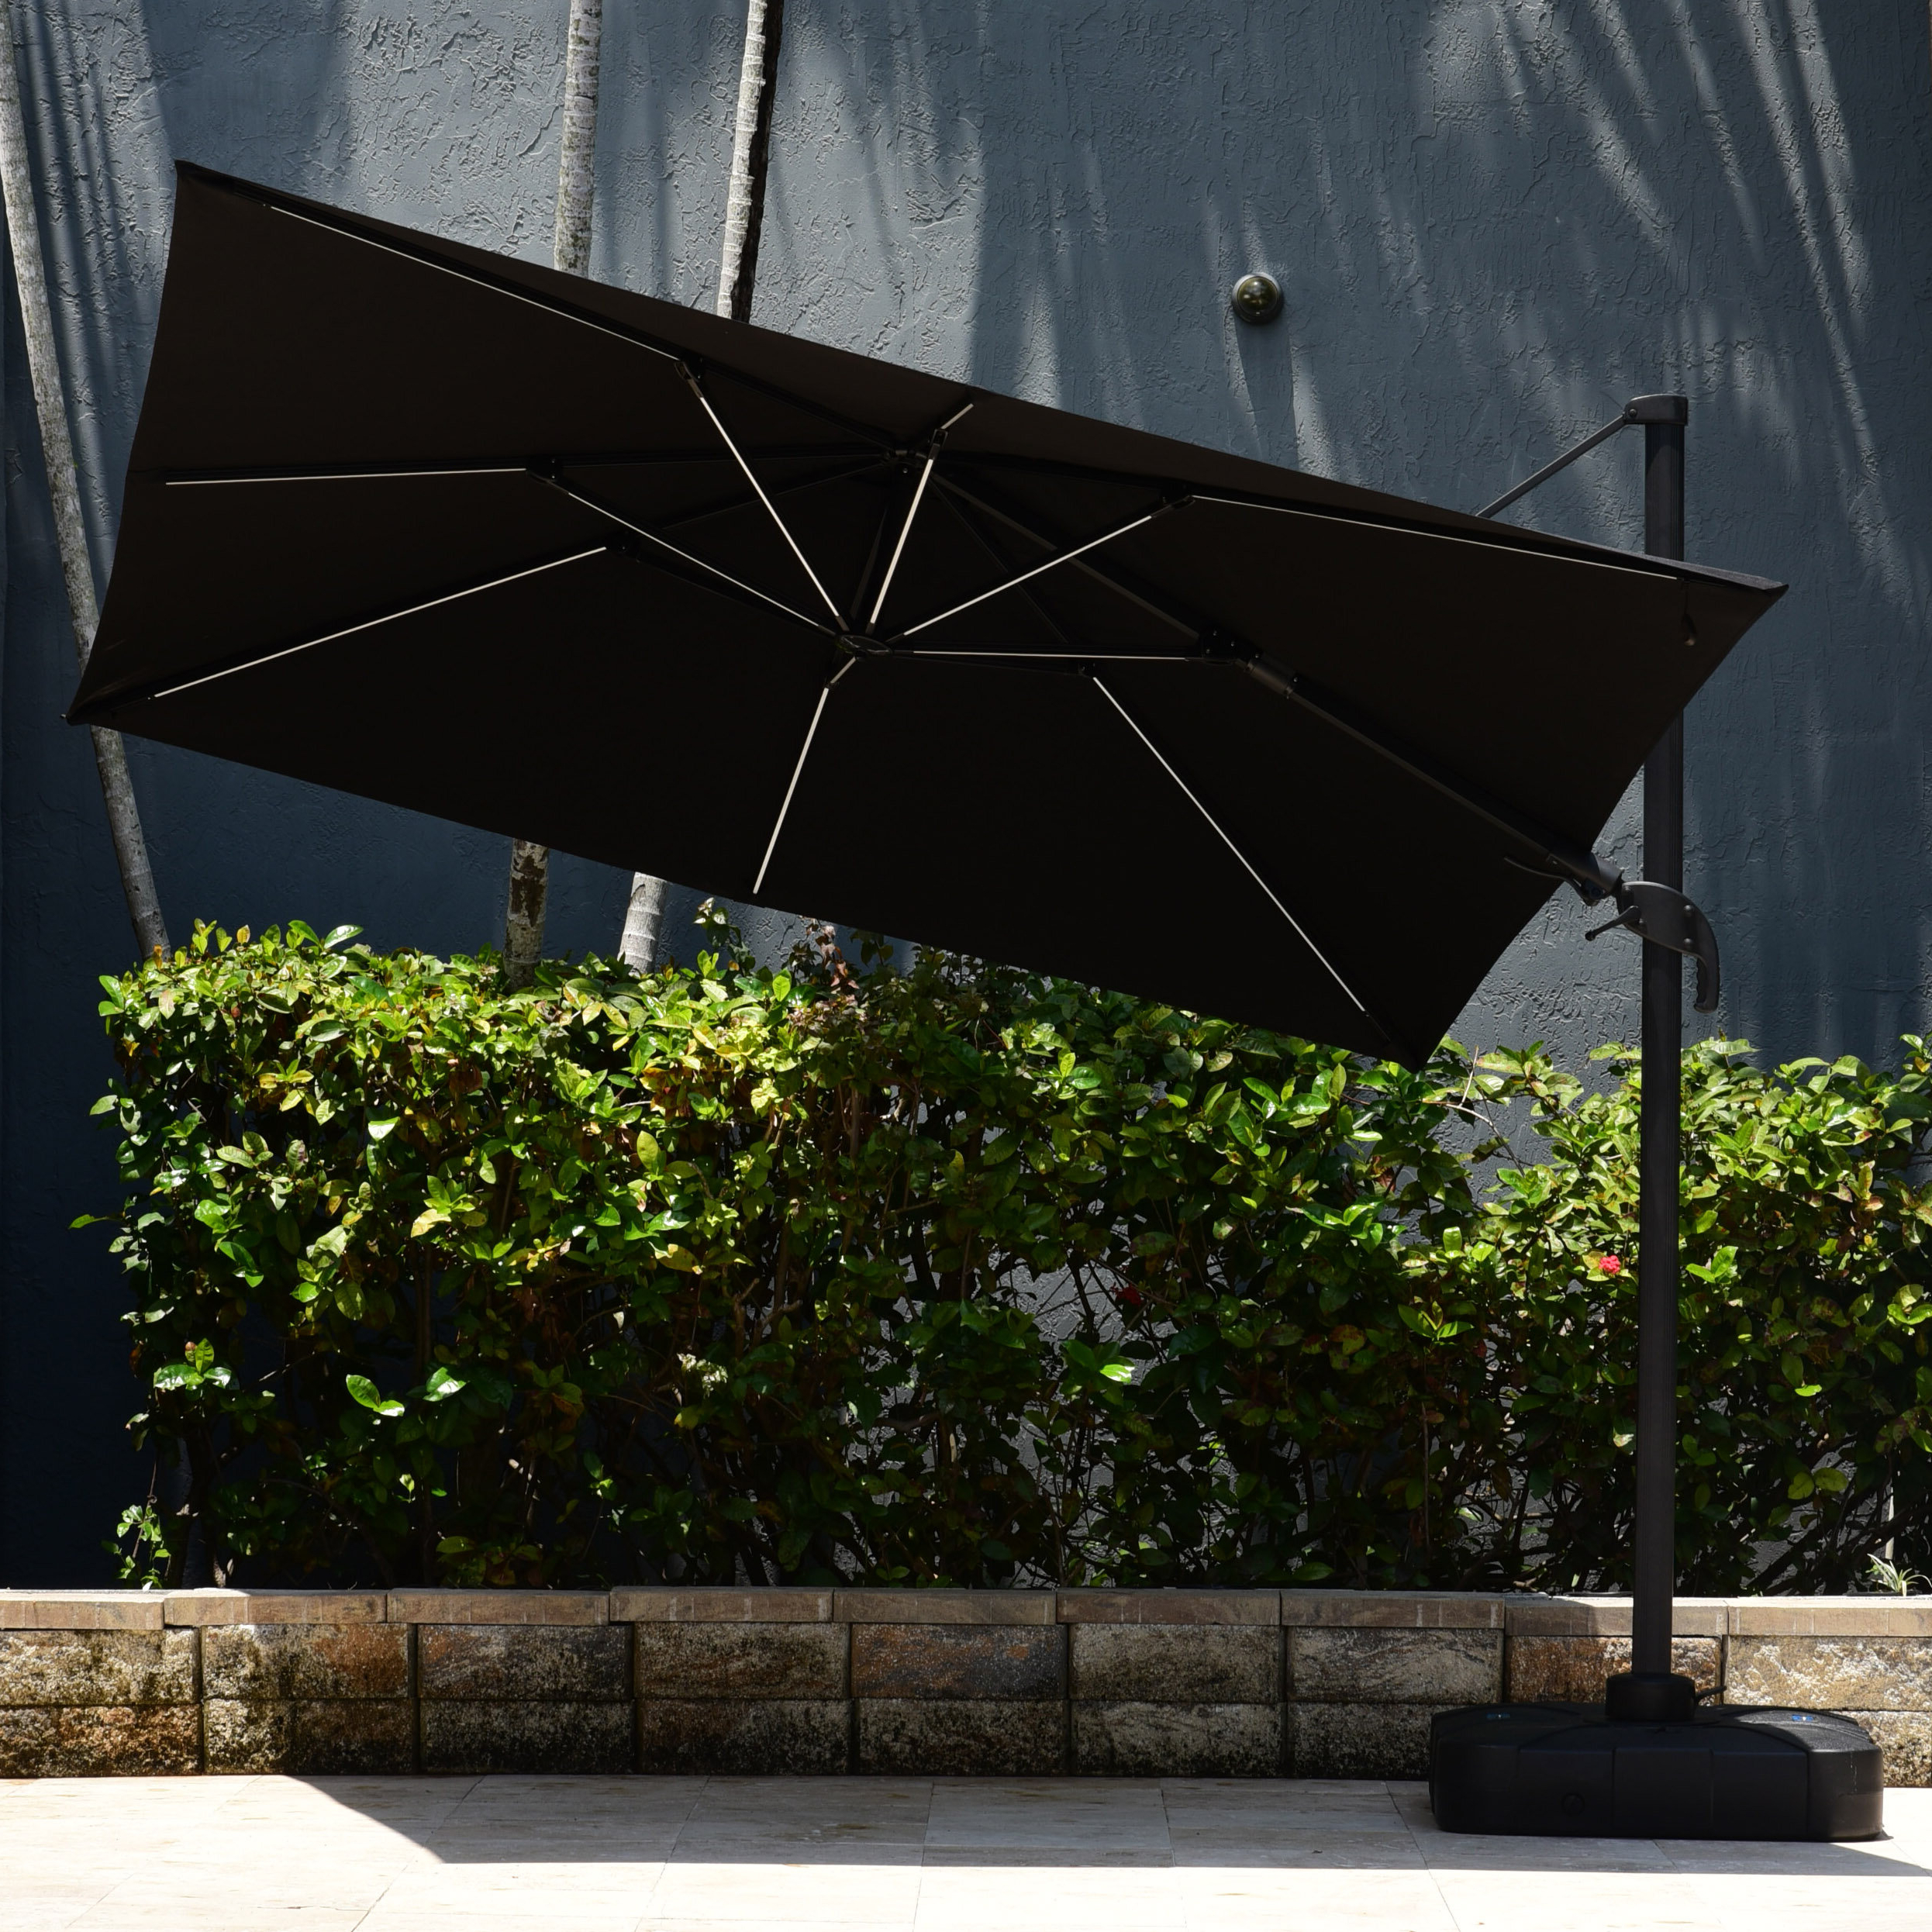 Macclesfield Square Cantilever Umbrellas Throughout Most Recently Released Spitler 10' Square Cantilever Umbrella (View 20 of 20)